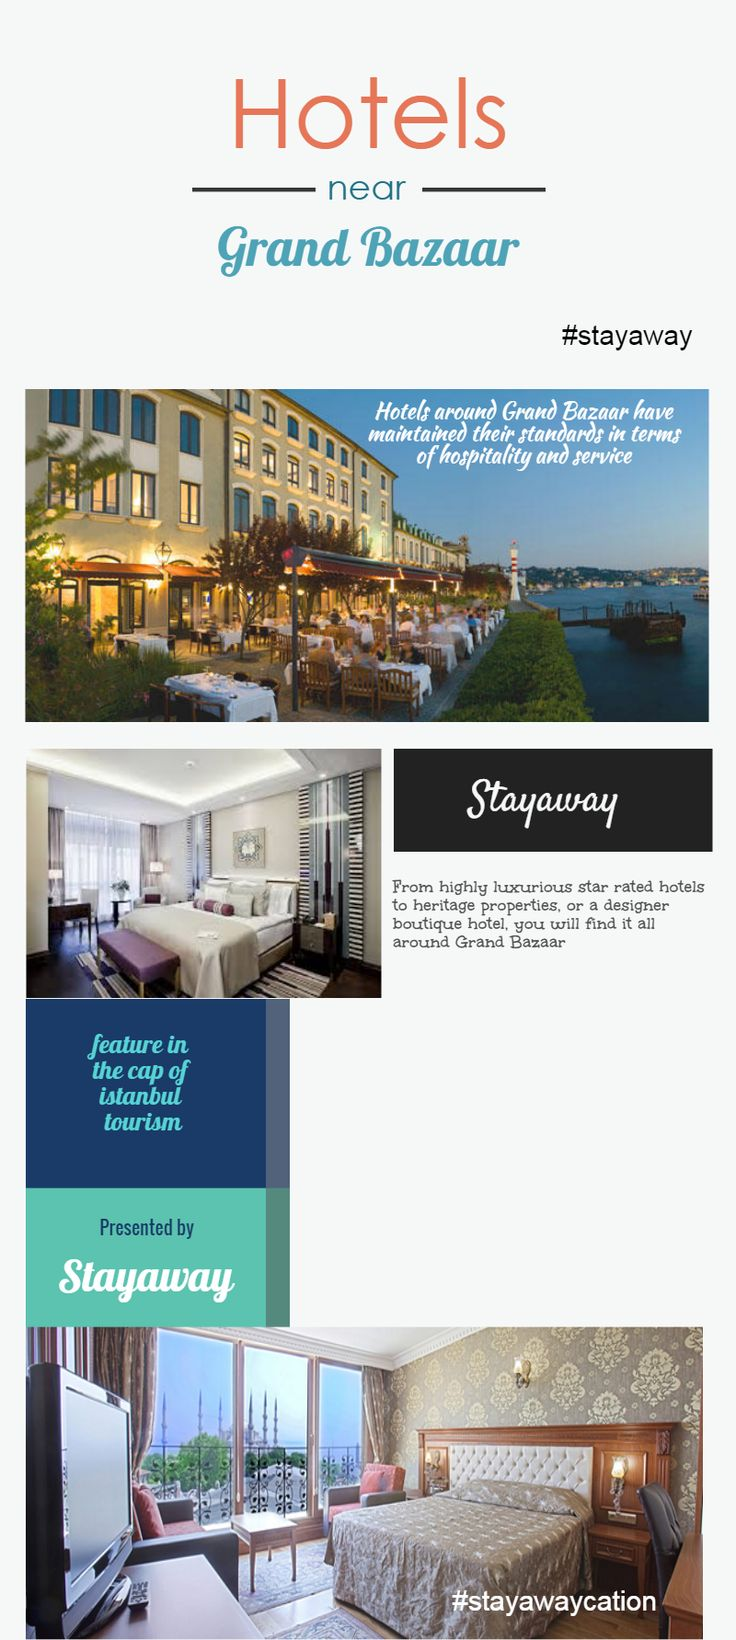 Find Hotels near Grand Bazaar Istanbul. Book with stayaway.com to save more and stay more.  #hotelsneargrandbazaaristanbul #CheapHotelsinIstanbul #BudgetHotelsinIstanbul #TopdealsIstanbulHotels #LuxuryHotelsinIstanbul #Cheaphotelsneargrandbazaar #HotelsinIstanbulTurkey #Stayaway